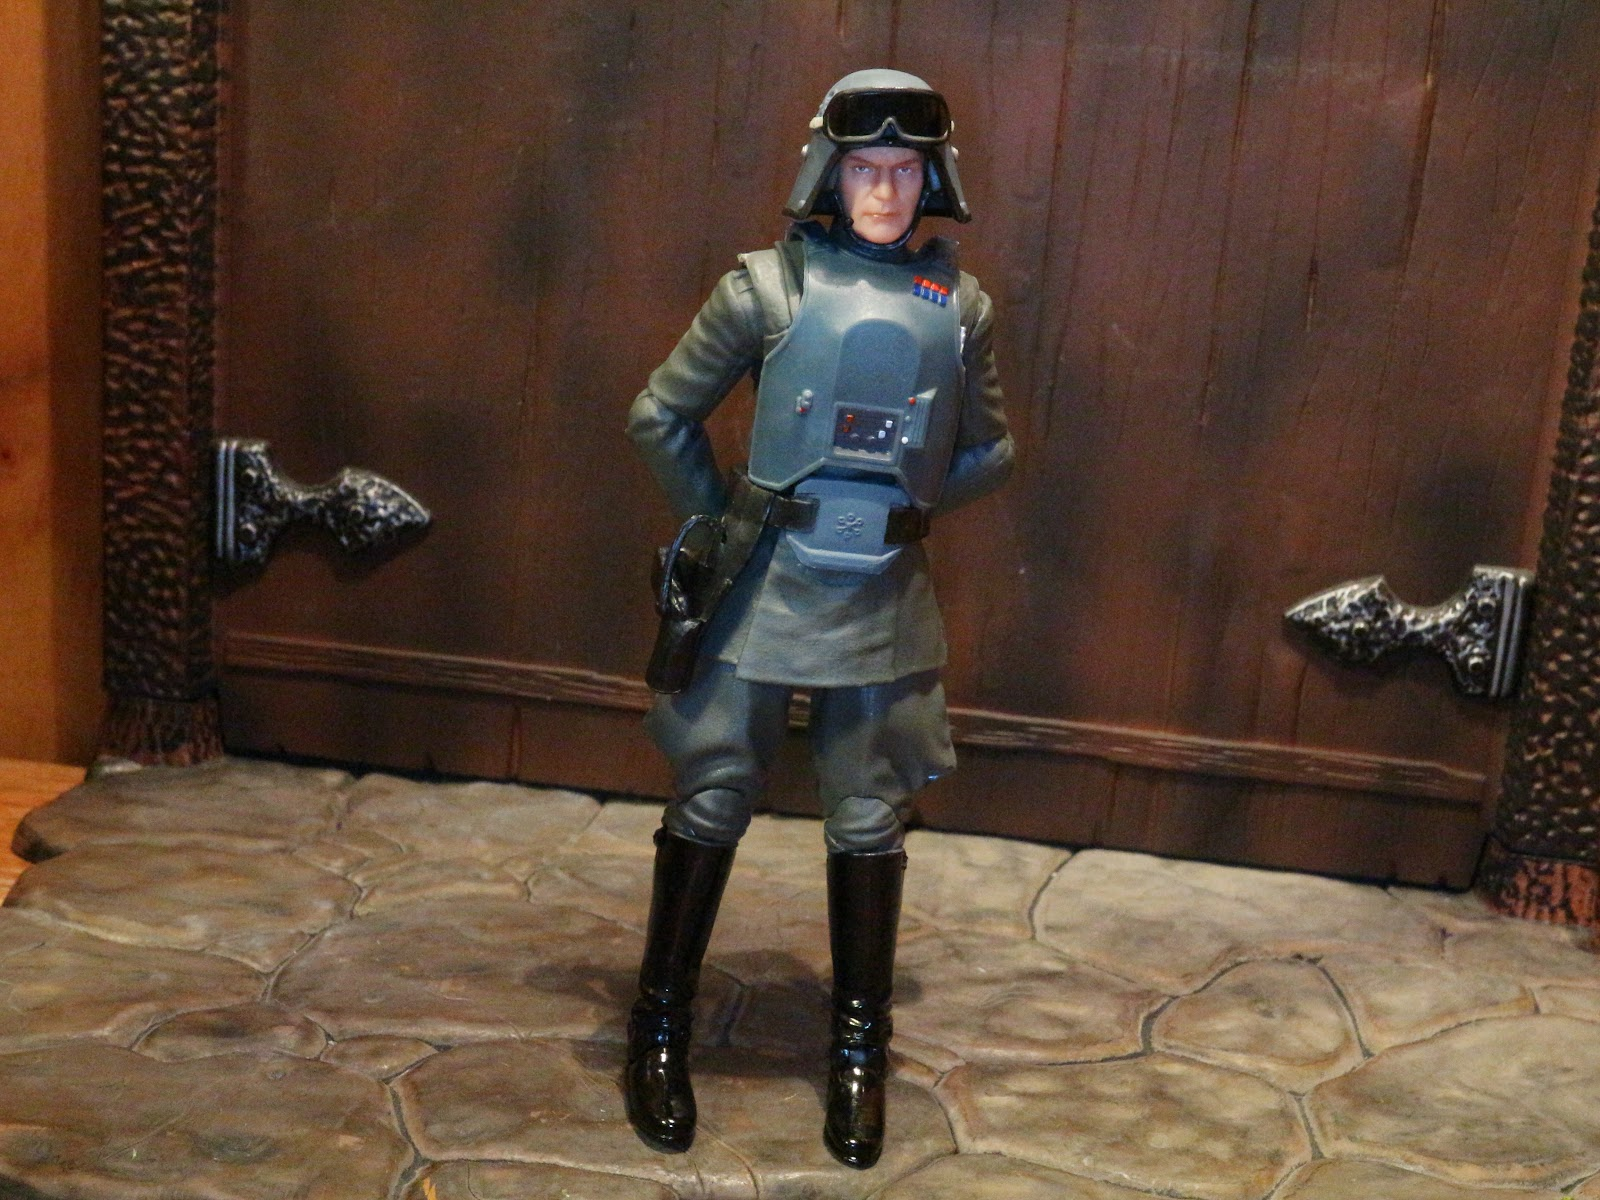 Action Figure Barbecue Action Figure Review General Veers From Star Wars The Black Series Phase Iii By Hasbro